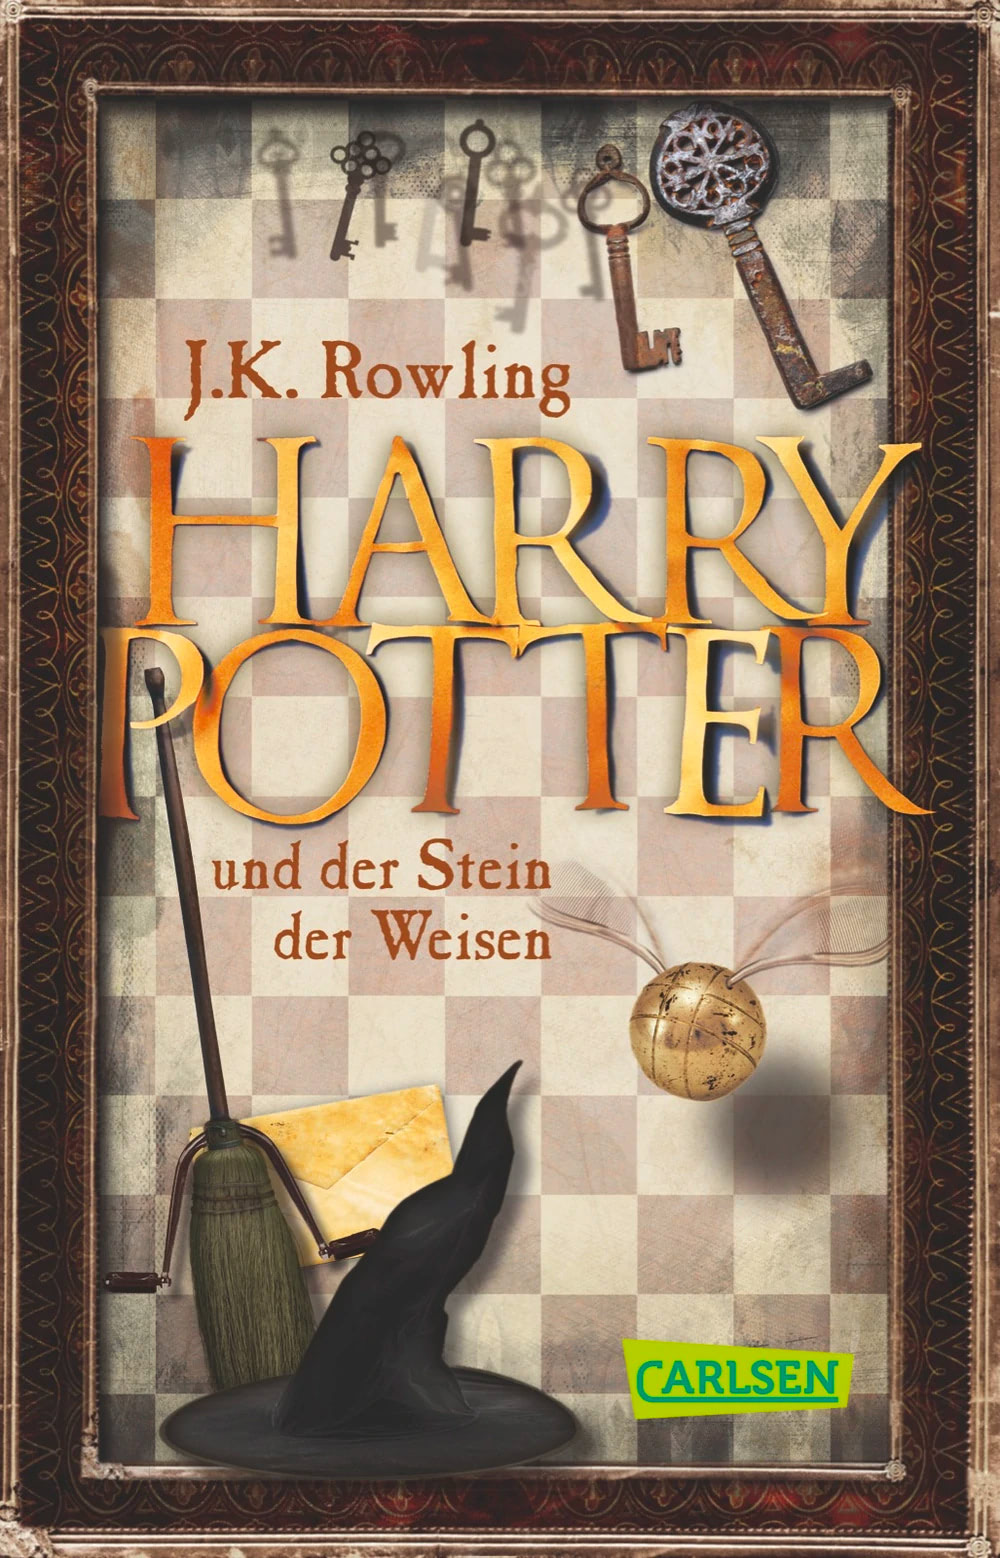 'Philosopher's Stone' German anniversary pocket edition